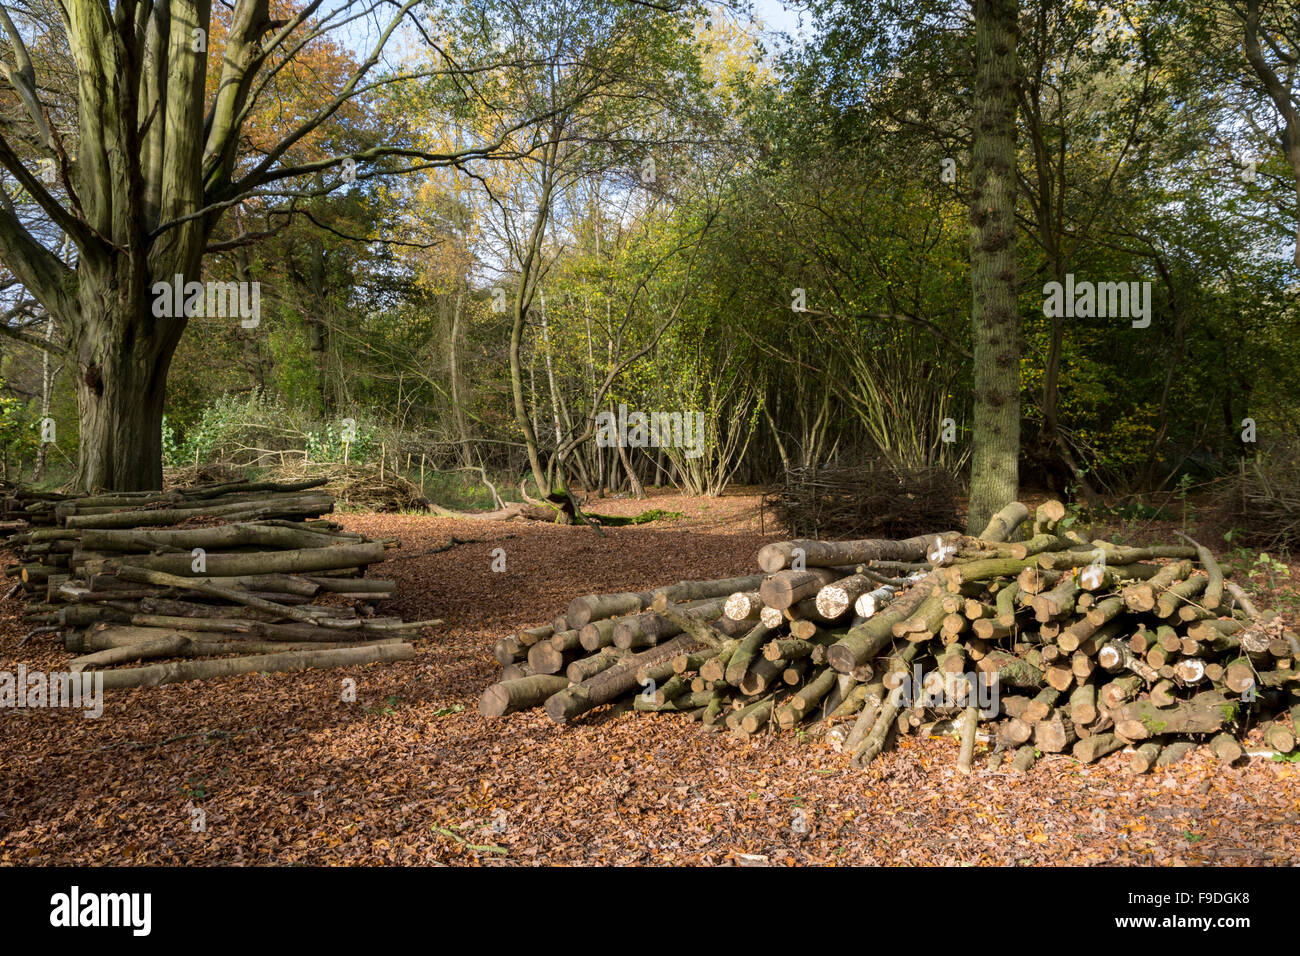 Logging in managed woodland - Stock Image